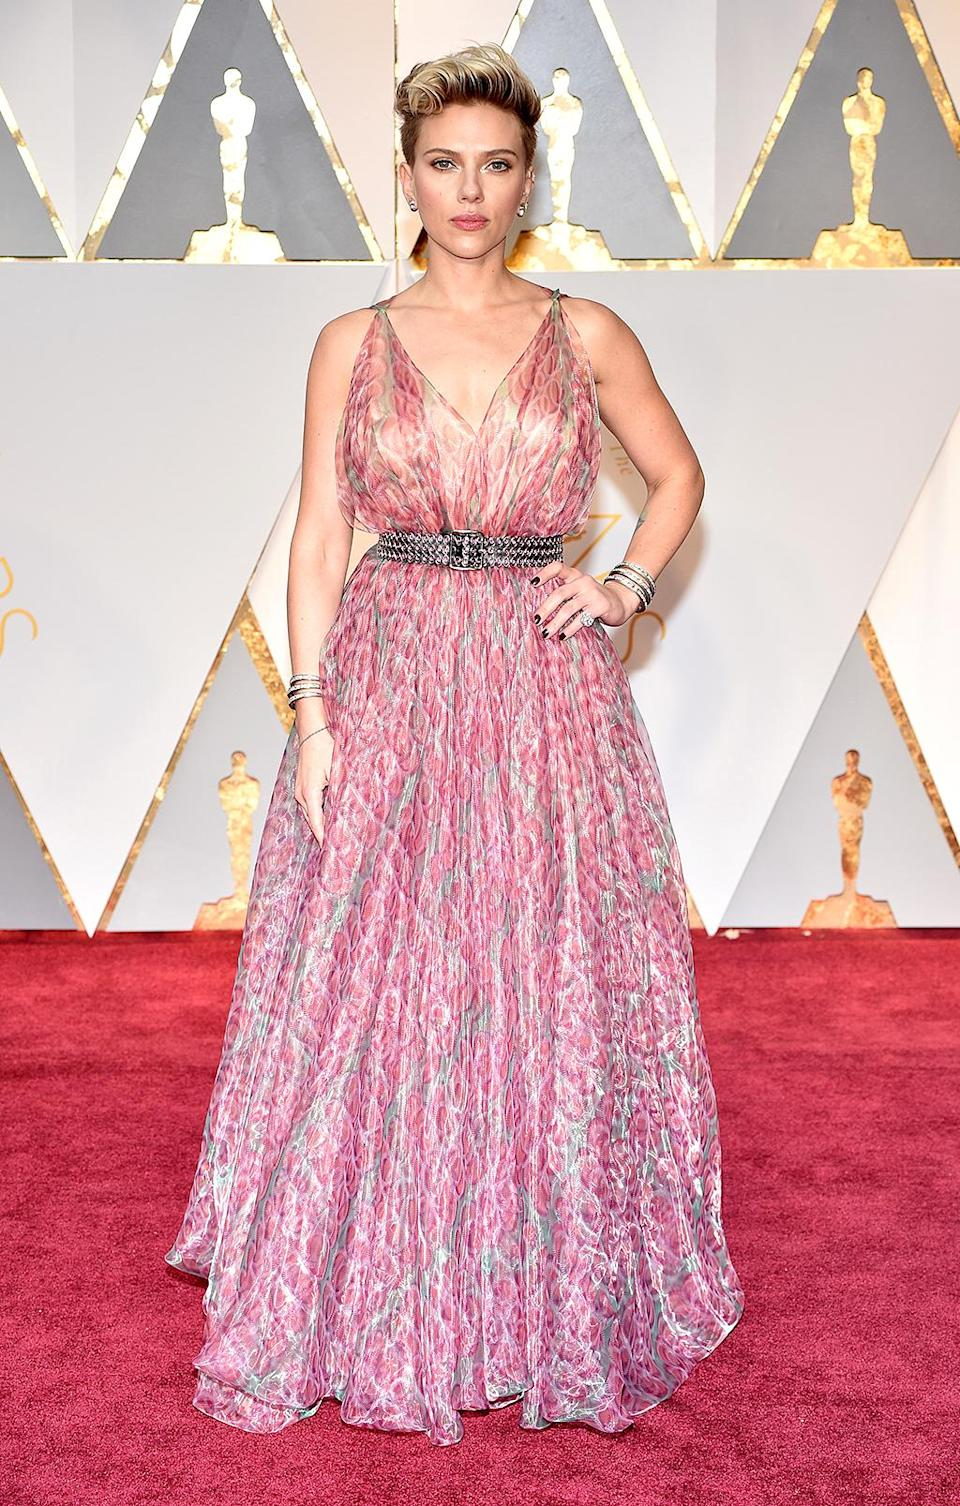 <p>Scarlett Johansson attends the 89th Annual Academy Awards at Hollywood & Highland Center on February 26, 2017 in Hollywood, California. (Photo by Kevin Mazur/Getty Images) </p>